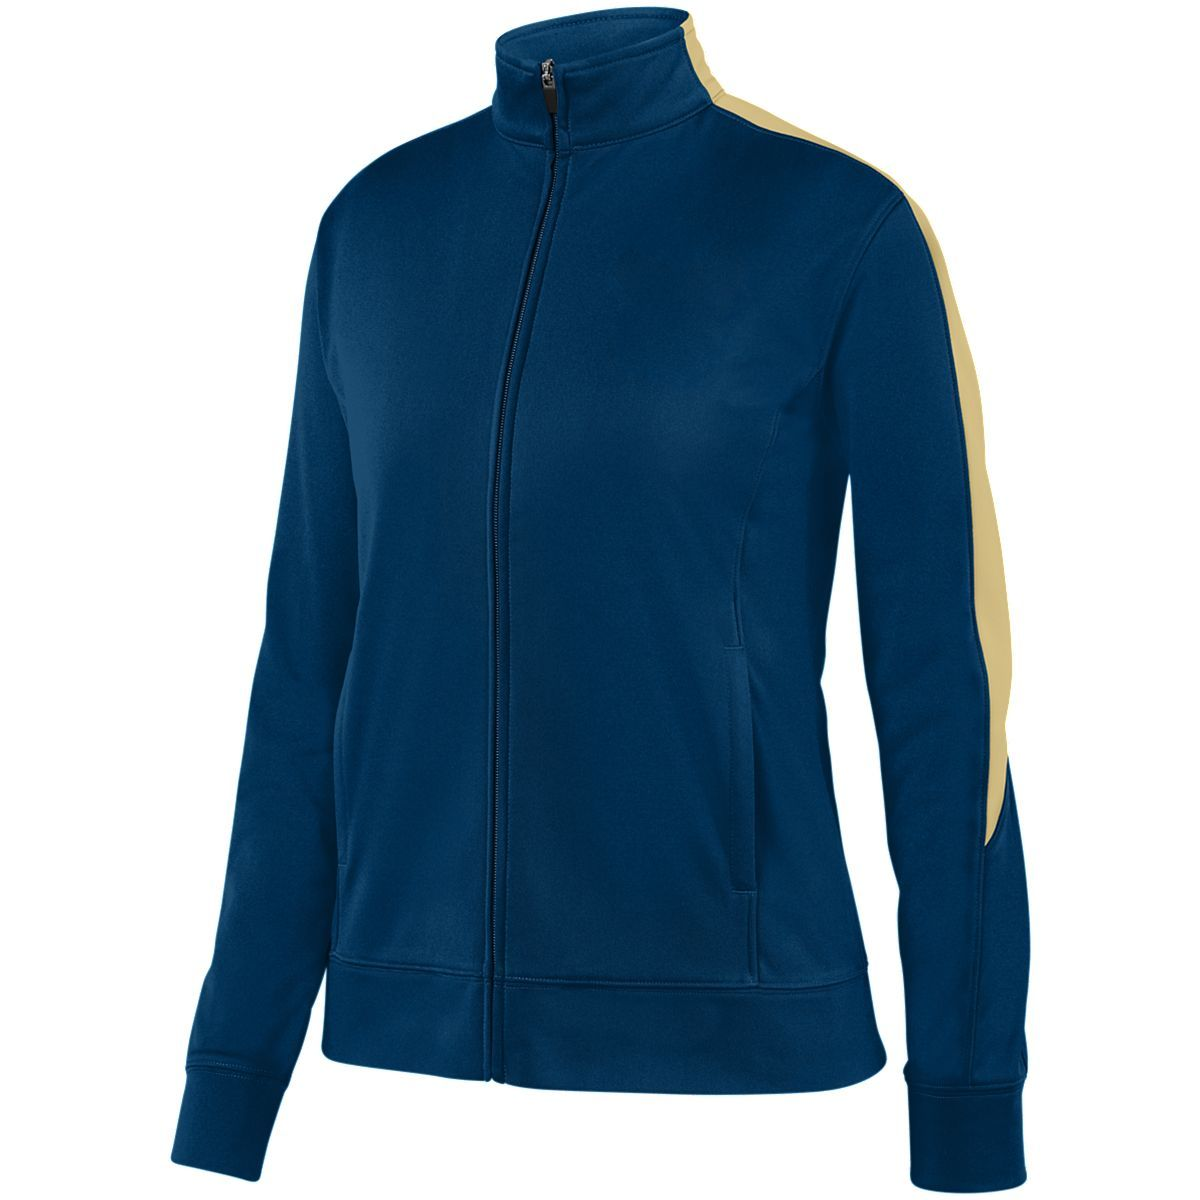 Ladies Medalist Jacket 2.0 - NAVY/VEGAS GOLD